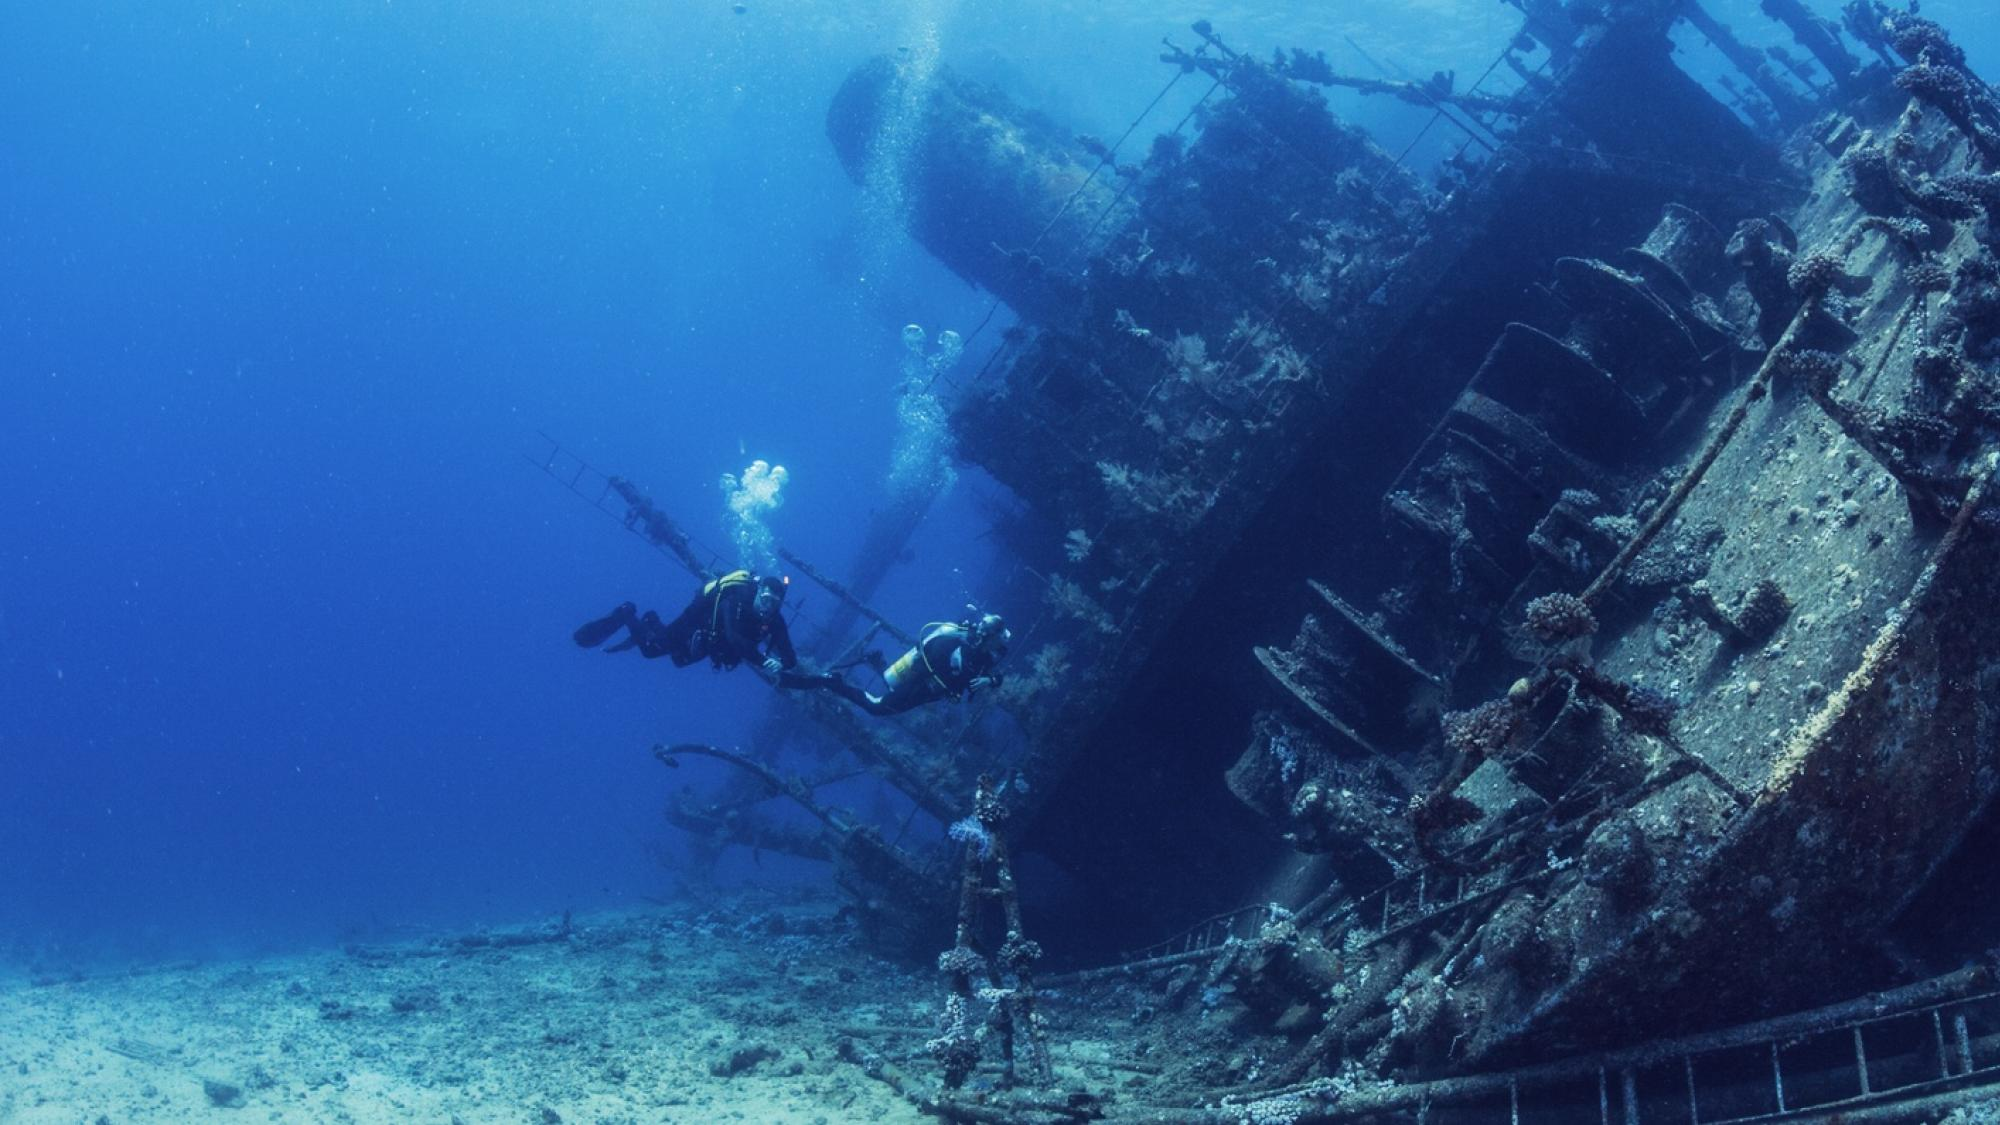 advanced open water diver swimming next to large sunken ship